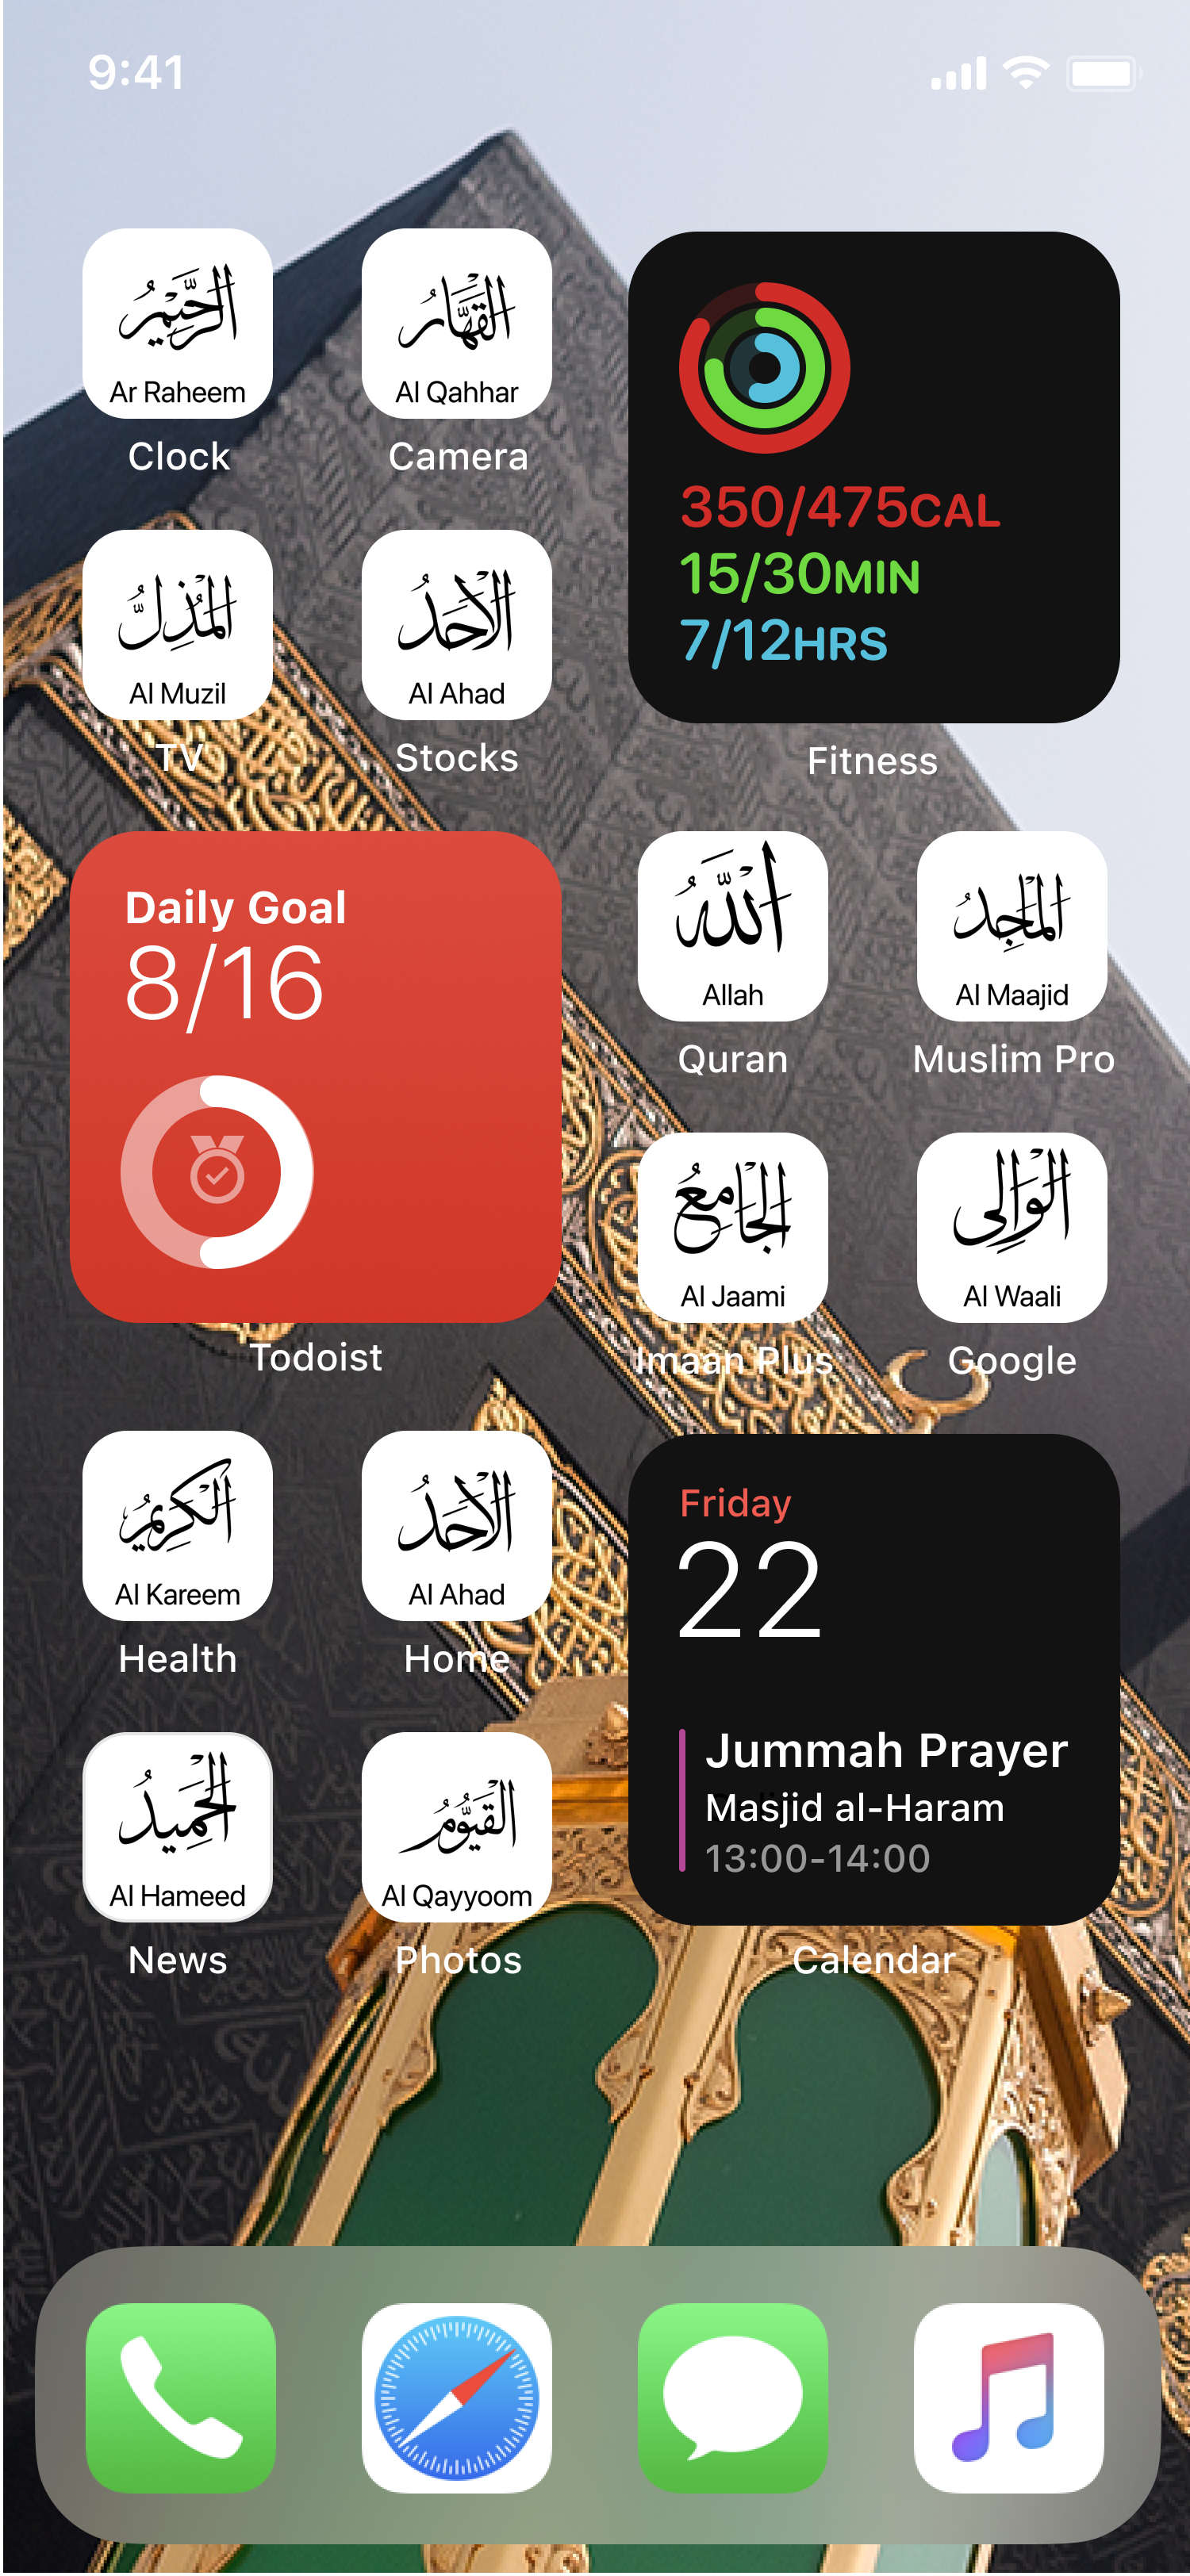 Cover image for 99 names of Allah app icons in light